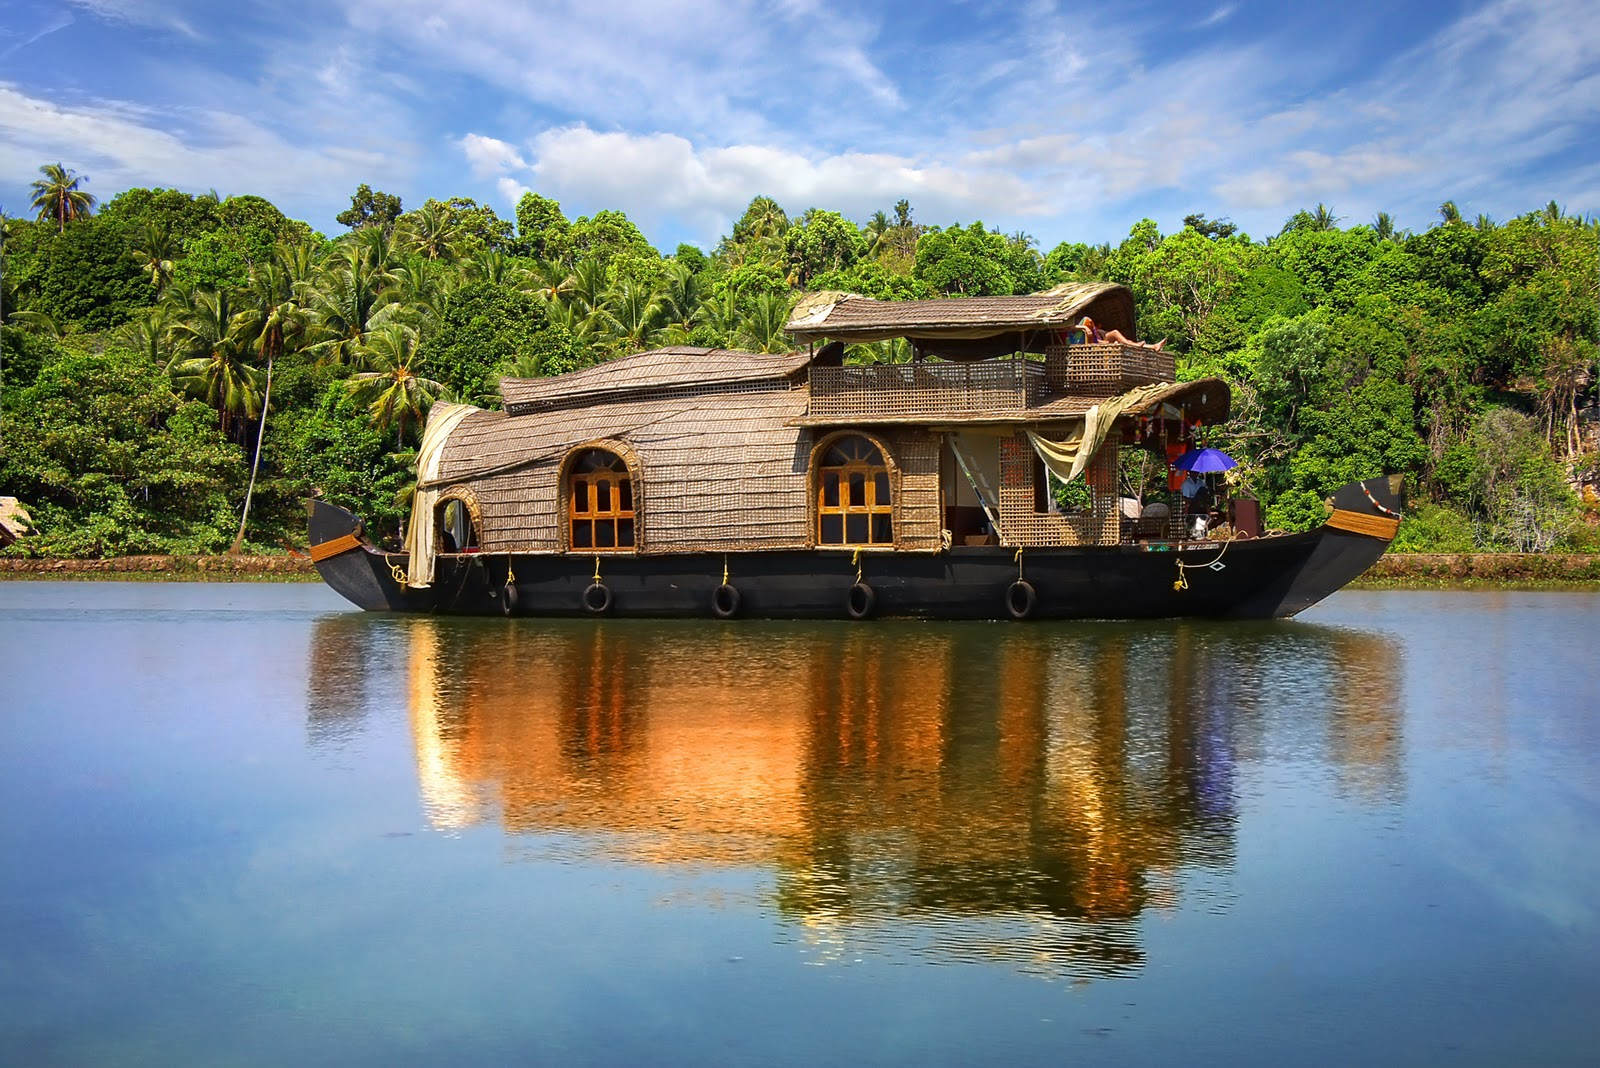 53_Luxury-Boat-in-Kerala.jpg